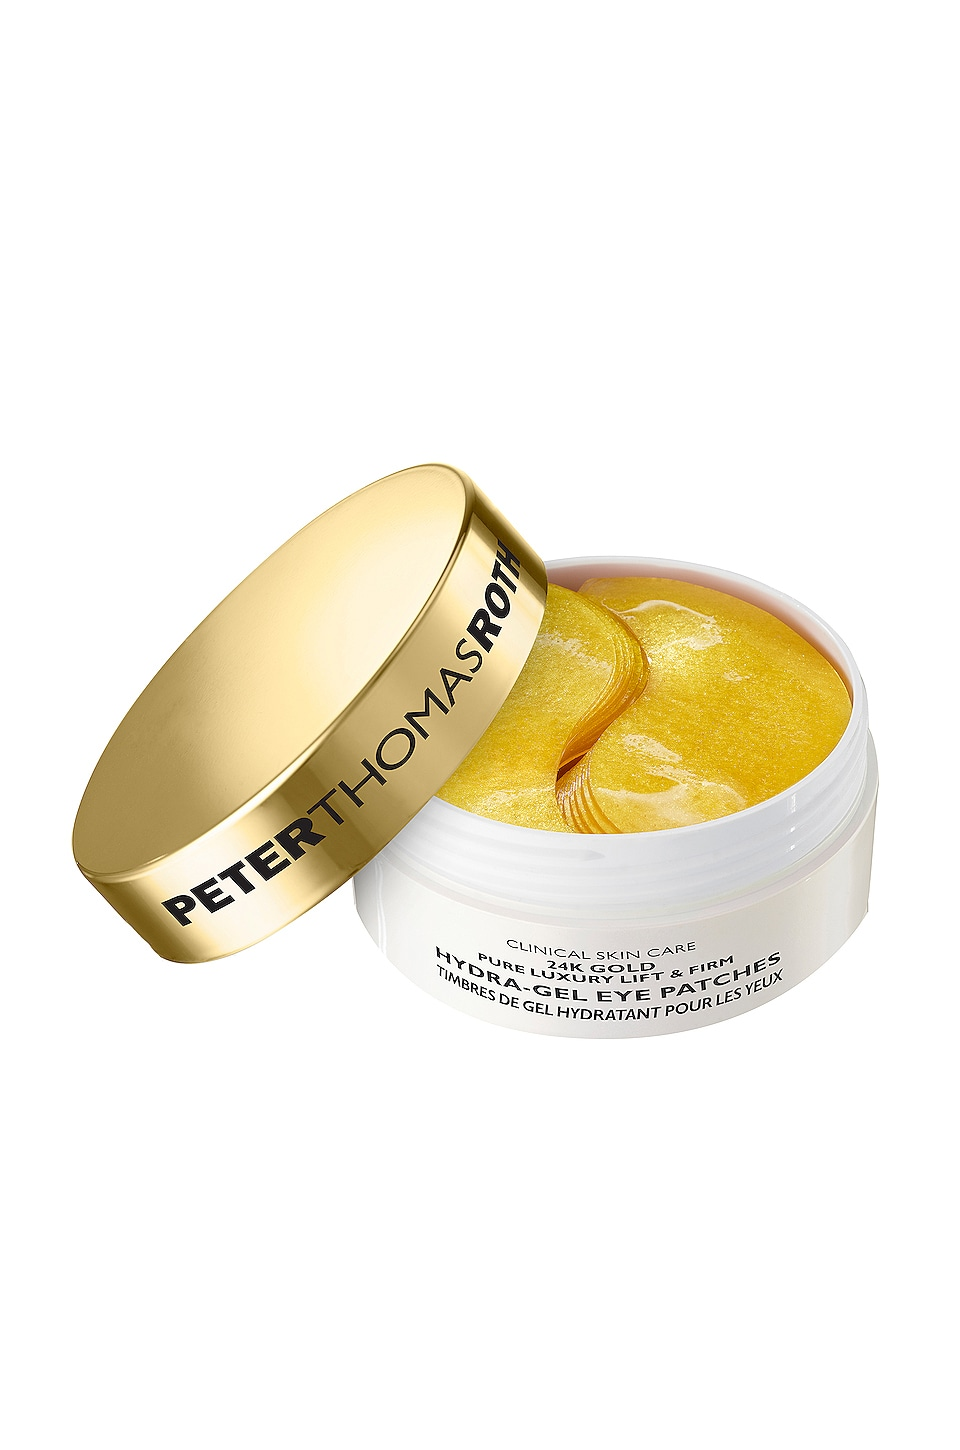 Peter Thomas Roth 24K Gold Pure Luxury Lift & Firm Hydra Gel Eye Patches